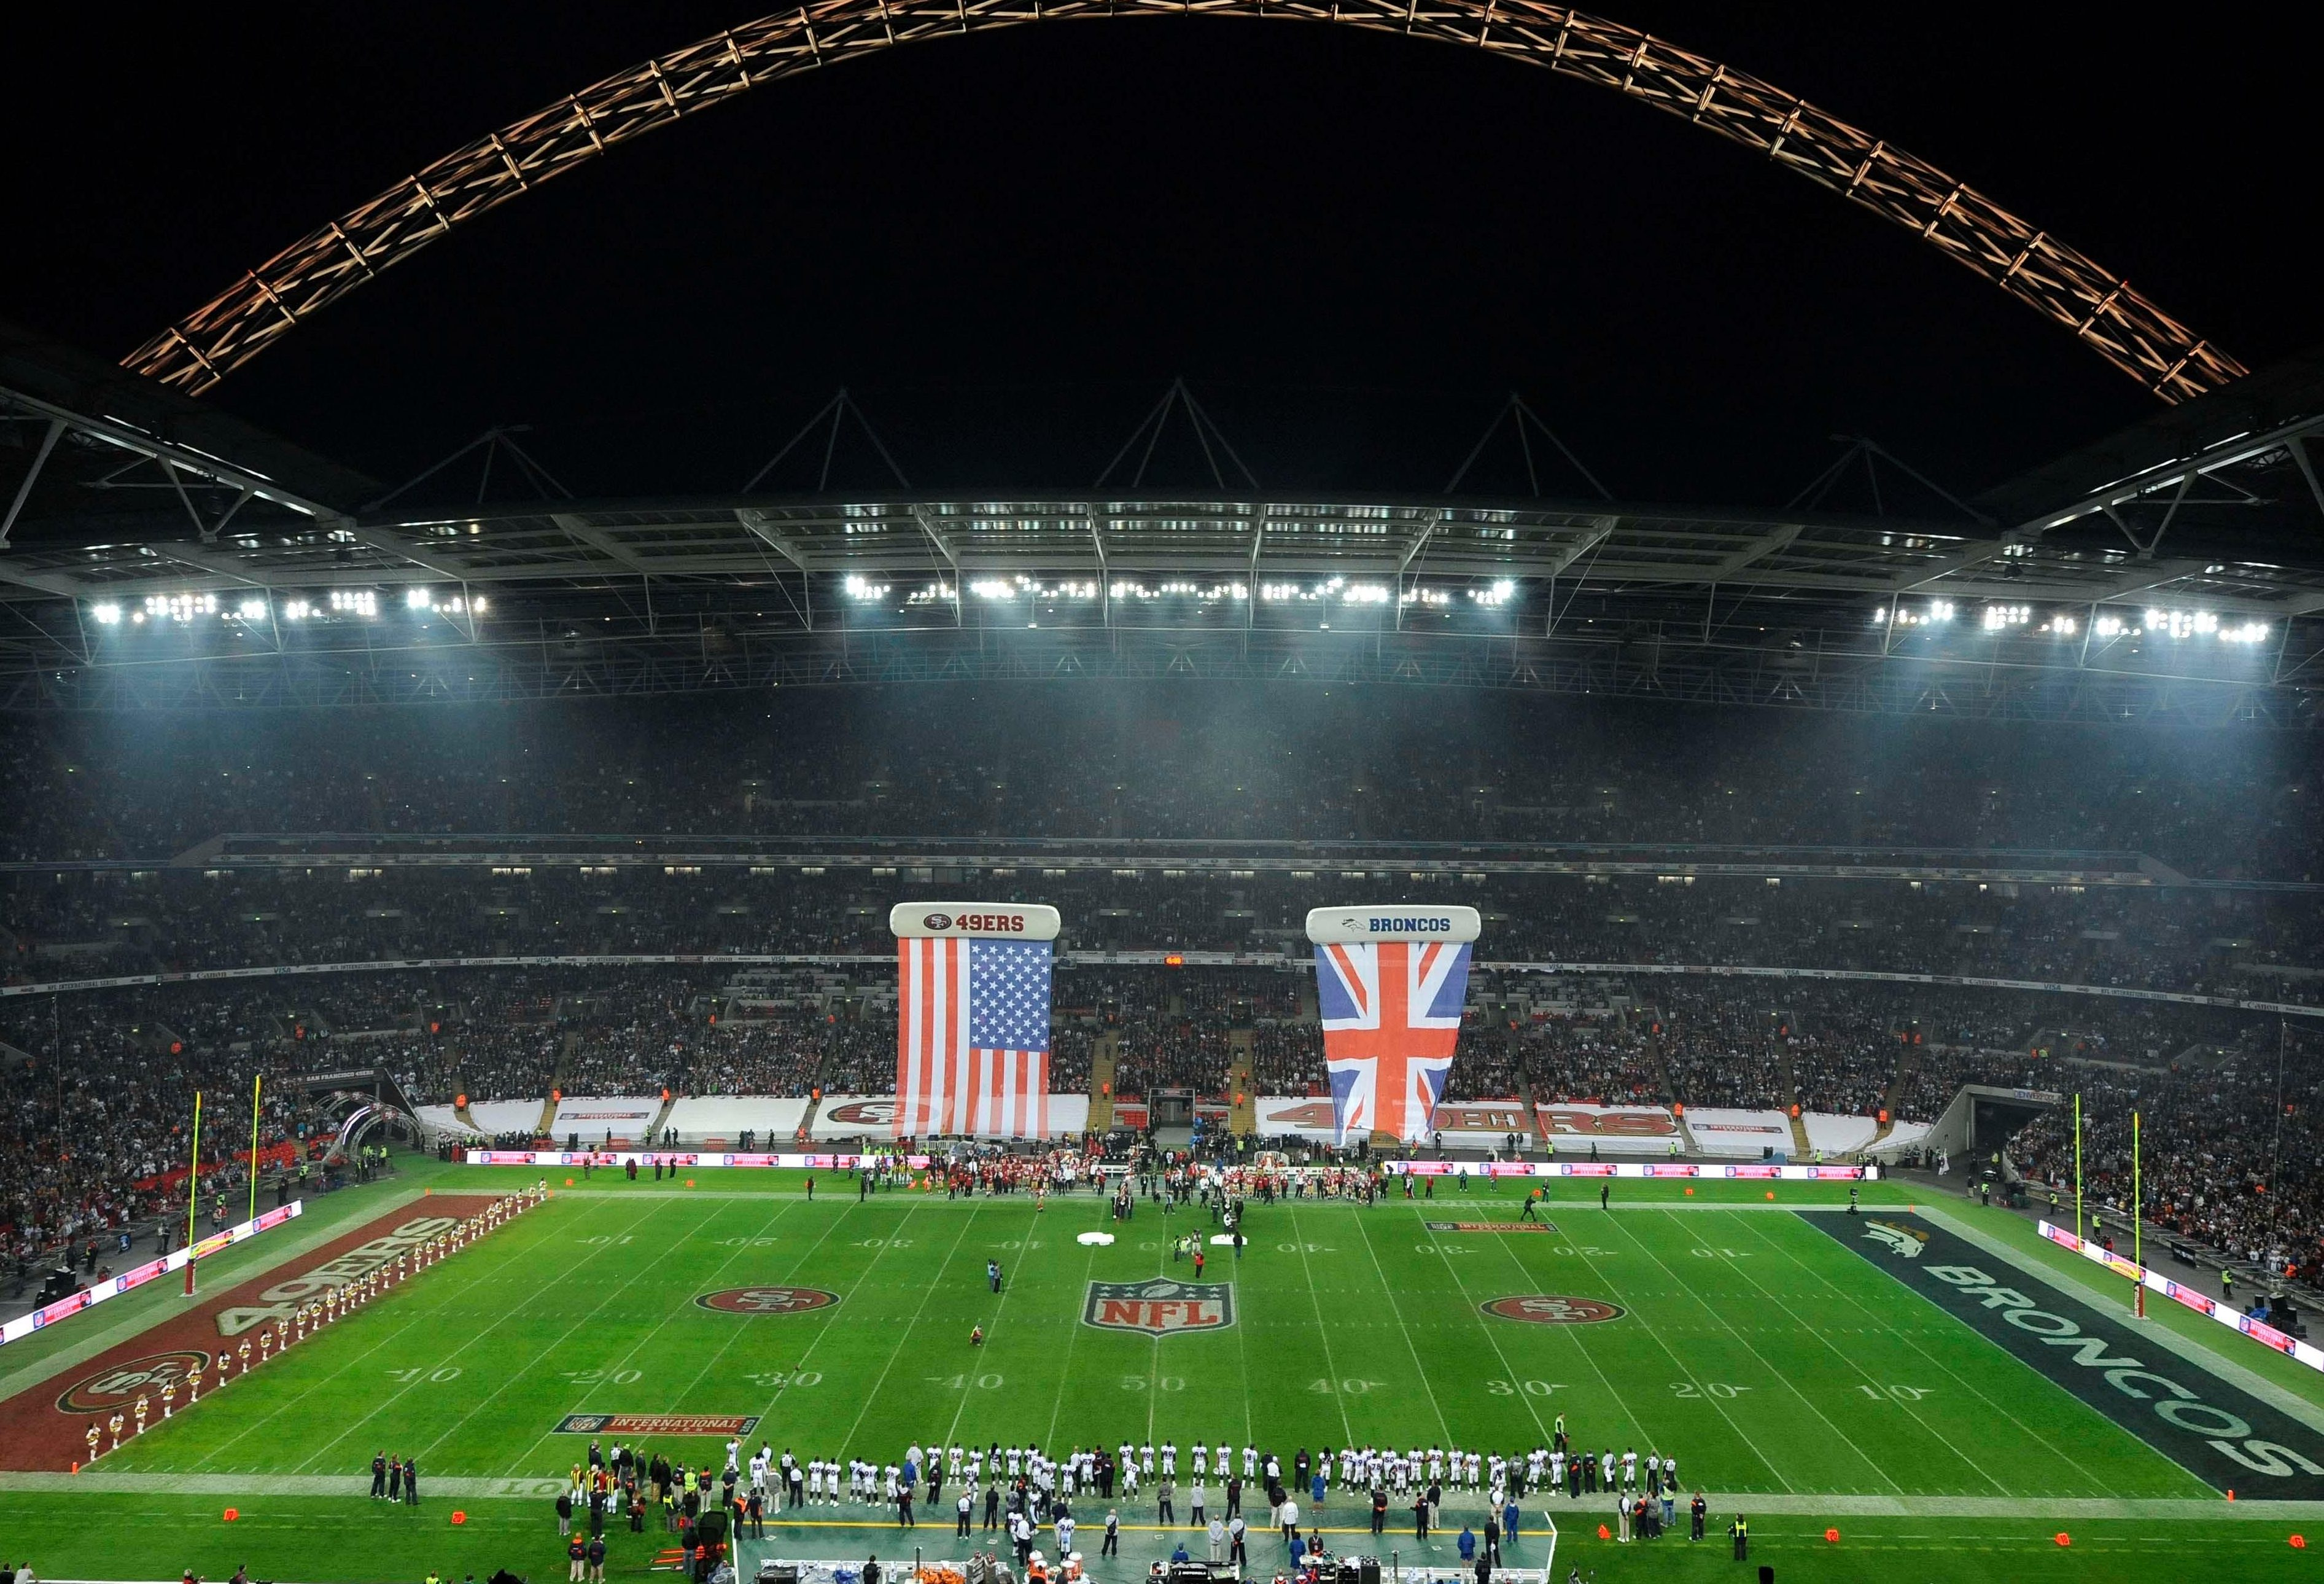 Wembley Stadium is set to become home to the Jacksonville Jaguars